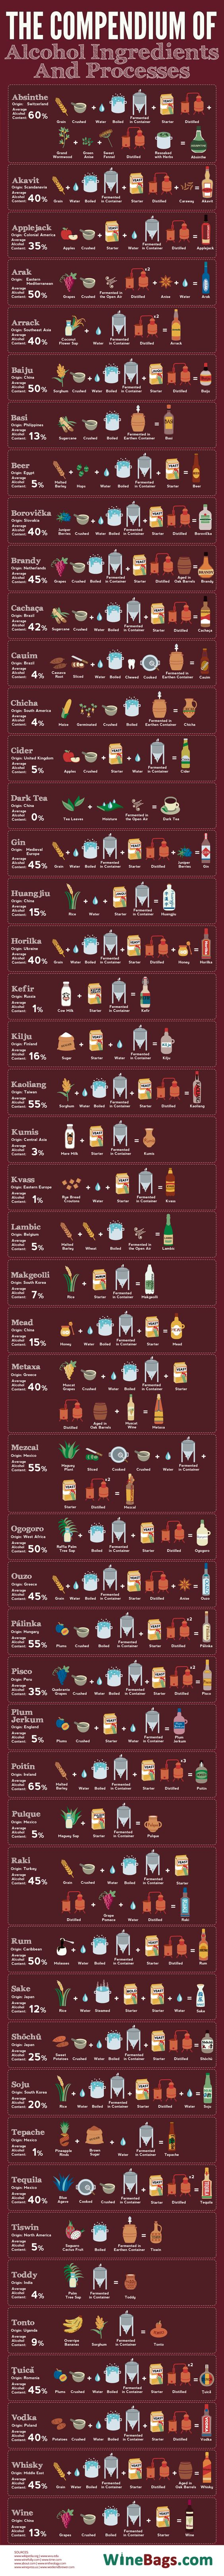 This Graphic Shows How Drinks And Spirits Are Made Around The World Popular Alcoholic Drinks Alcoholic Drinks Around The World Most Popular Alcoholic Drinks